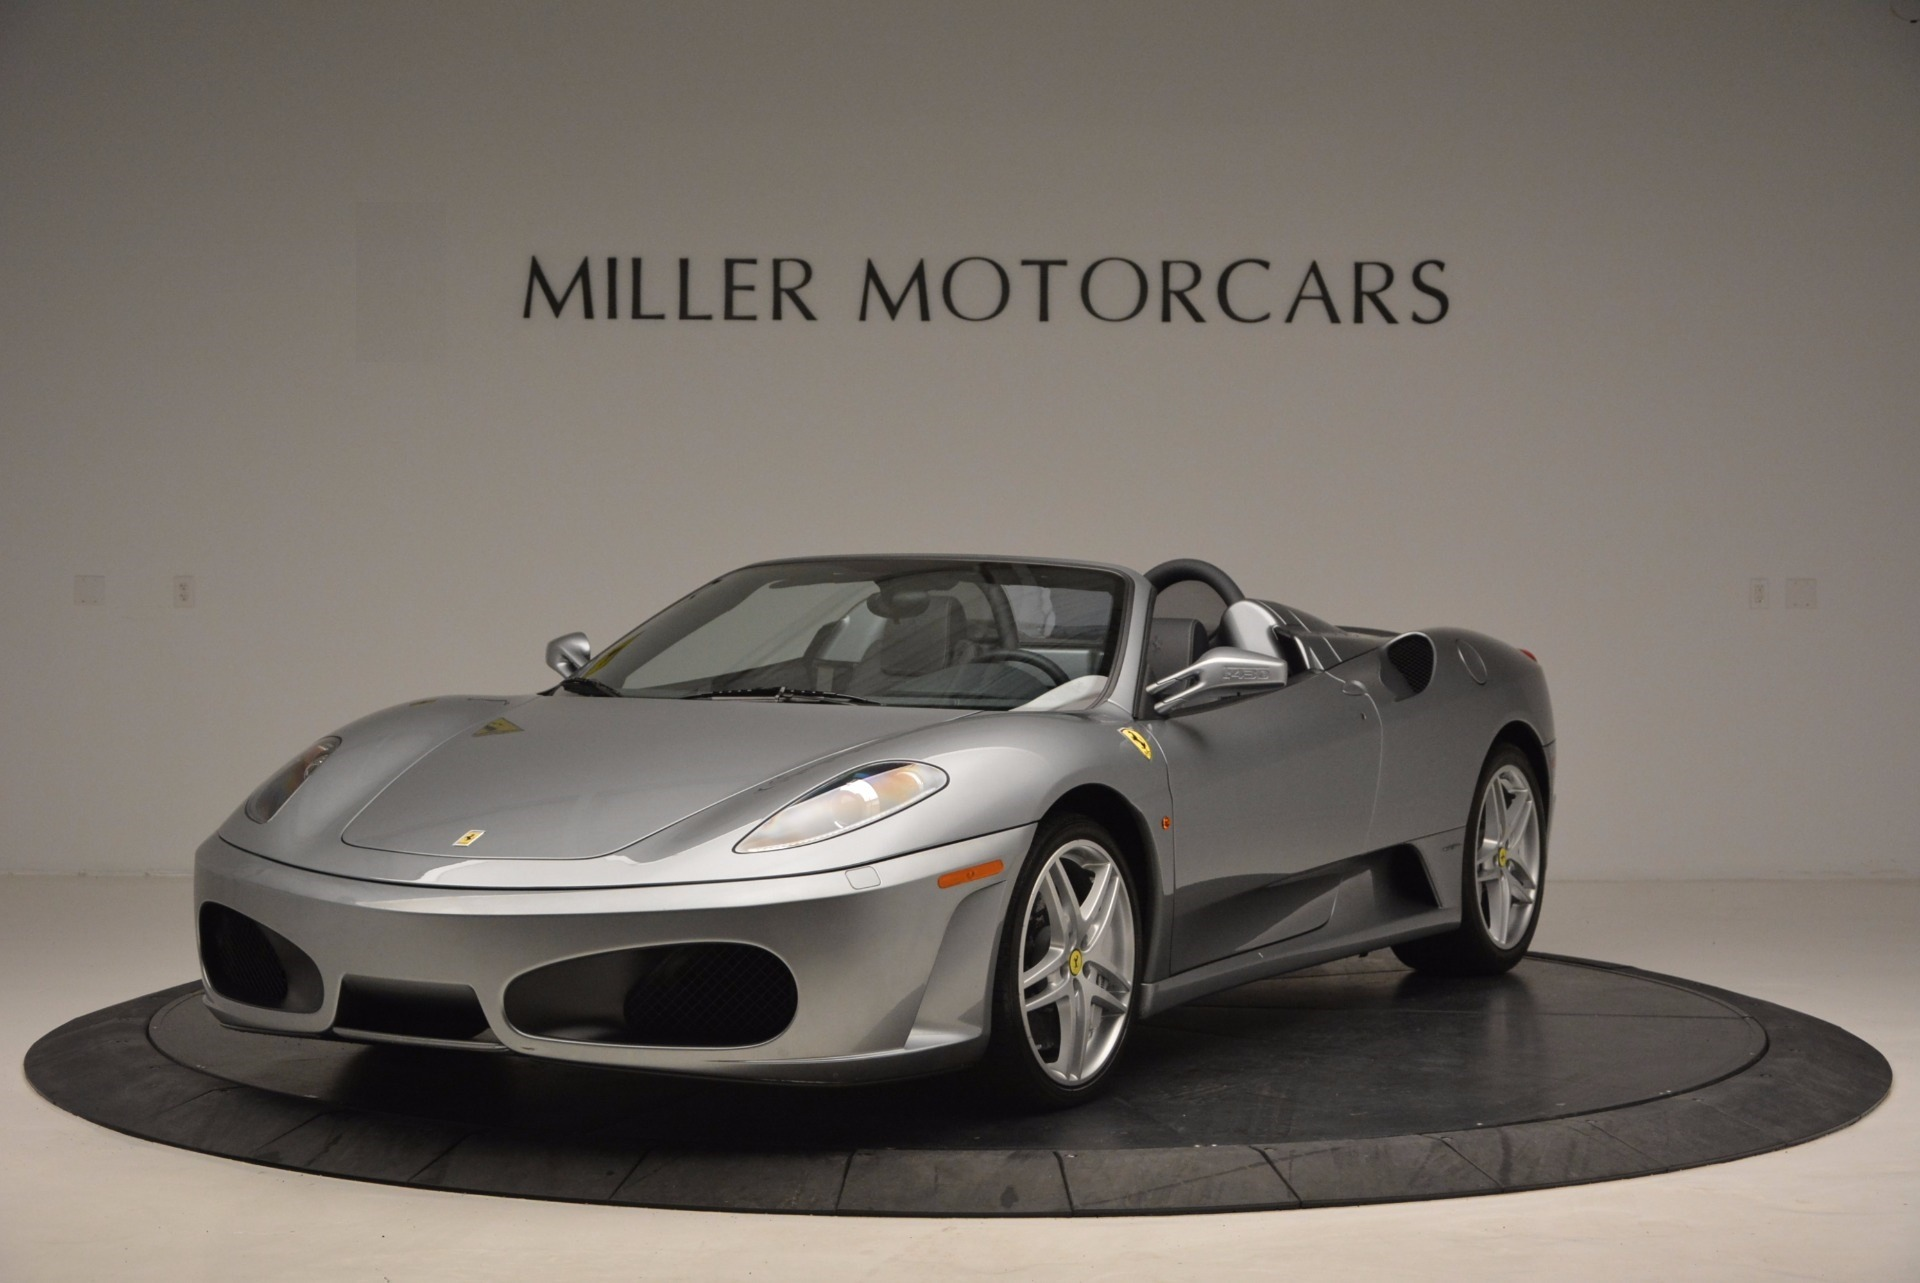 Used 2007 Ferrari F430 Spider for sale Sold at Aston Martin of Greenwich in Greenwich CT 06830 1